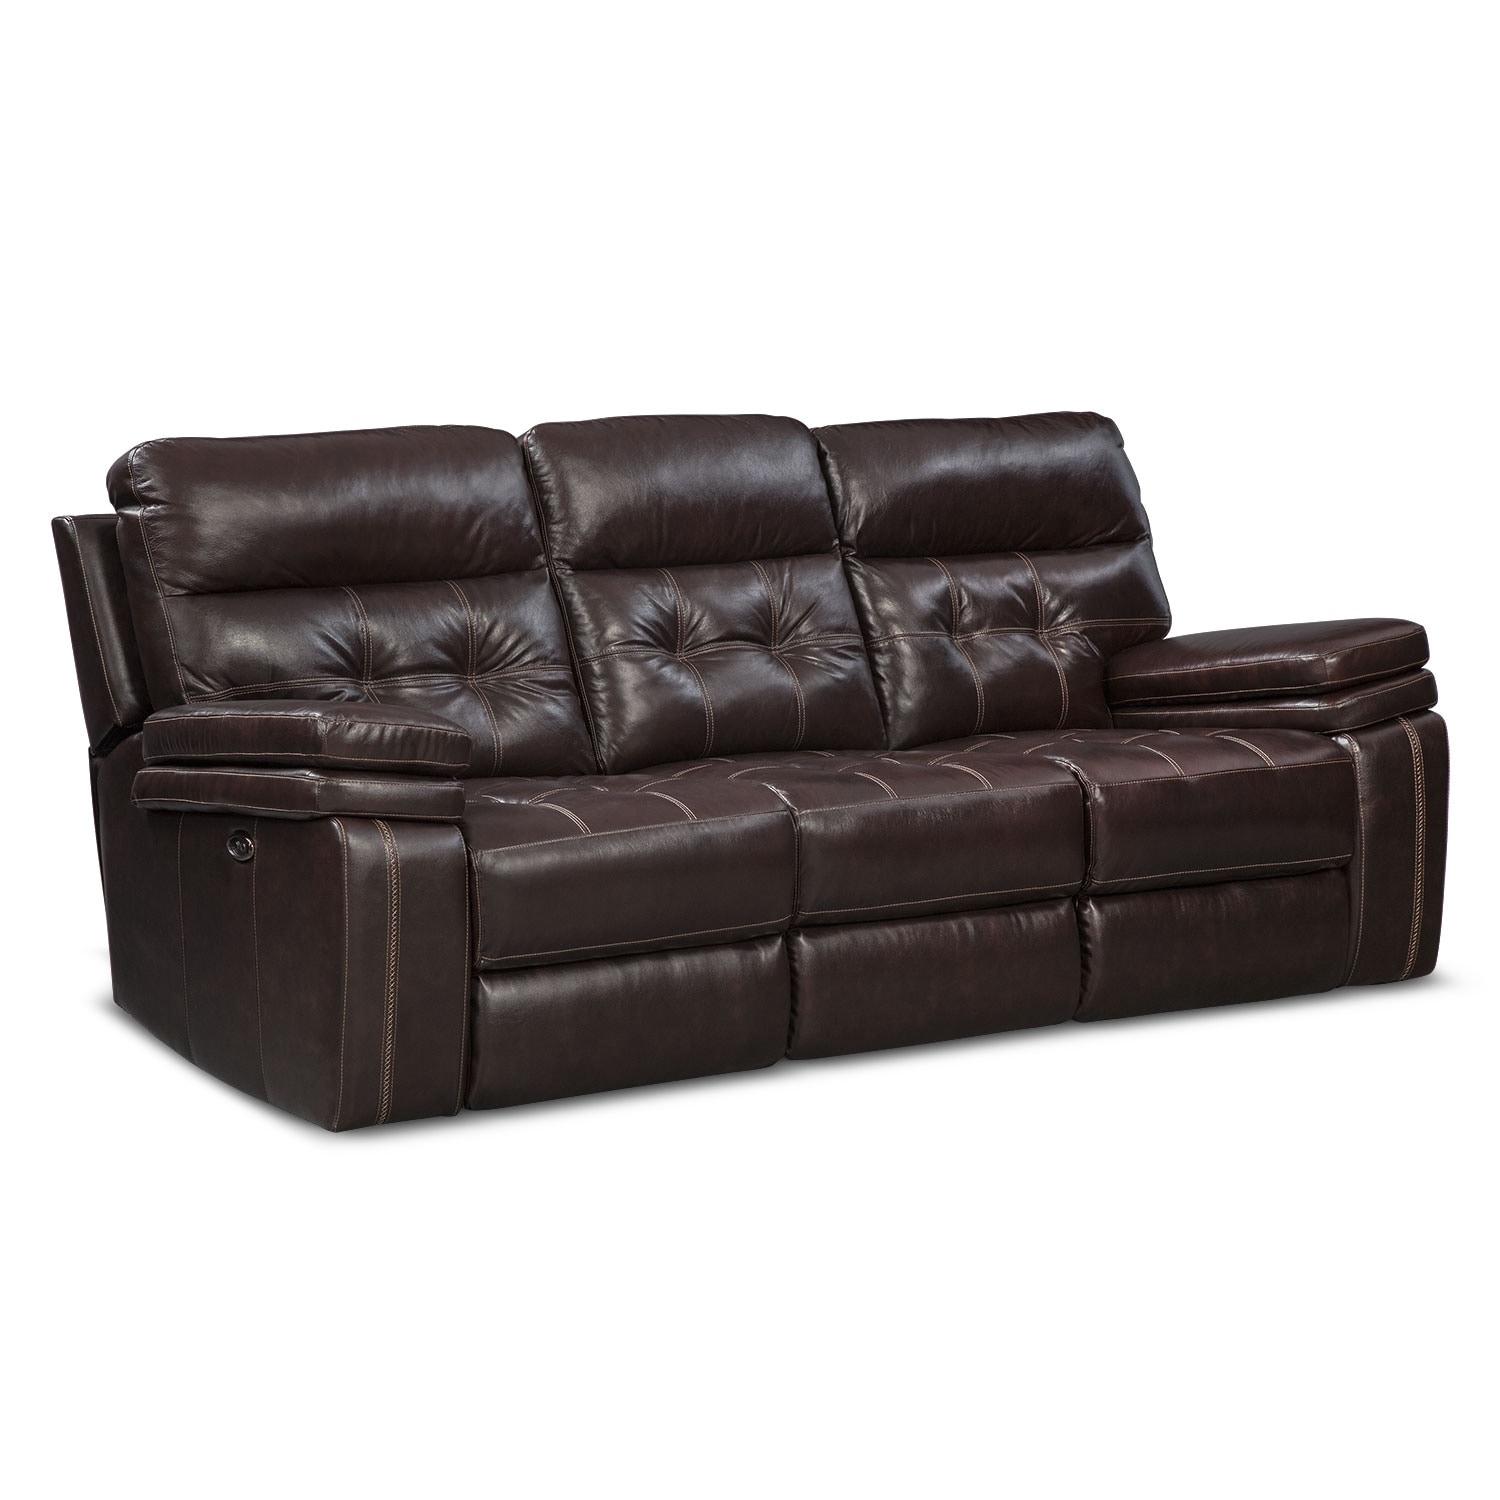 Brisco Power Reclining Sofa And Glider Recliner Brown